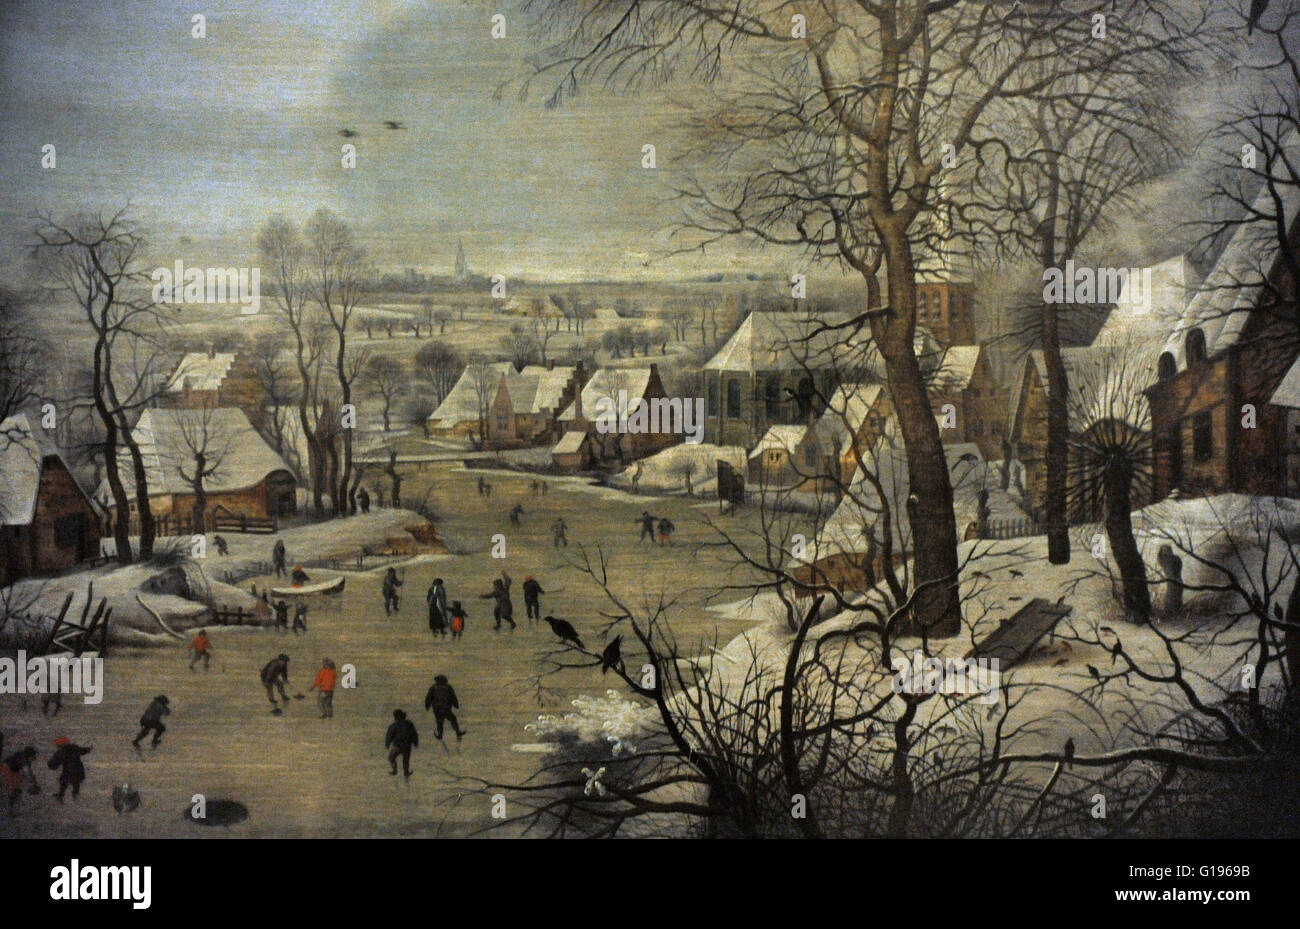 Pieter Brueghel the Younger (1564-1638). Flemish painter. Winter Landscape with ice skaters and a bird trap, 1565. - Stock Image